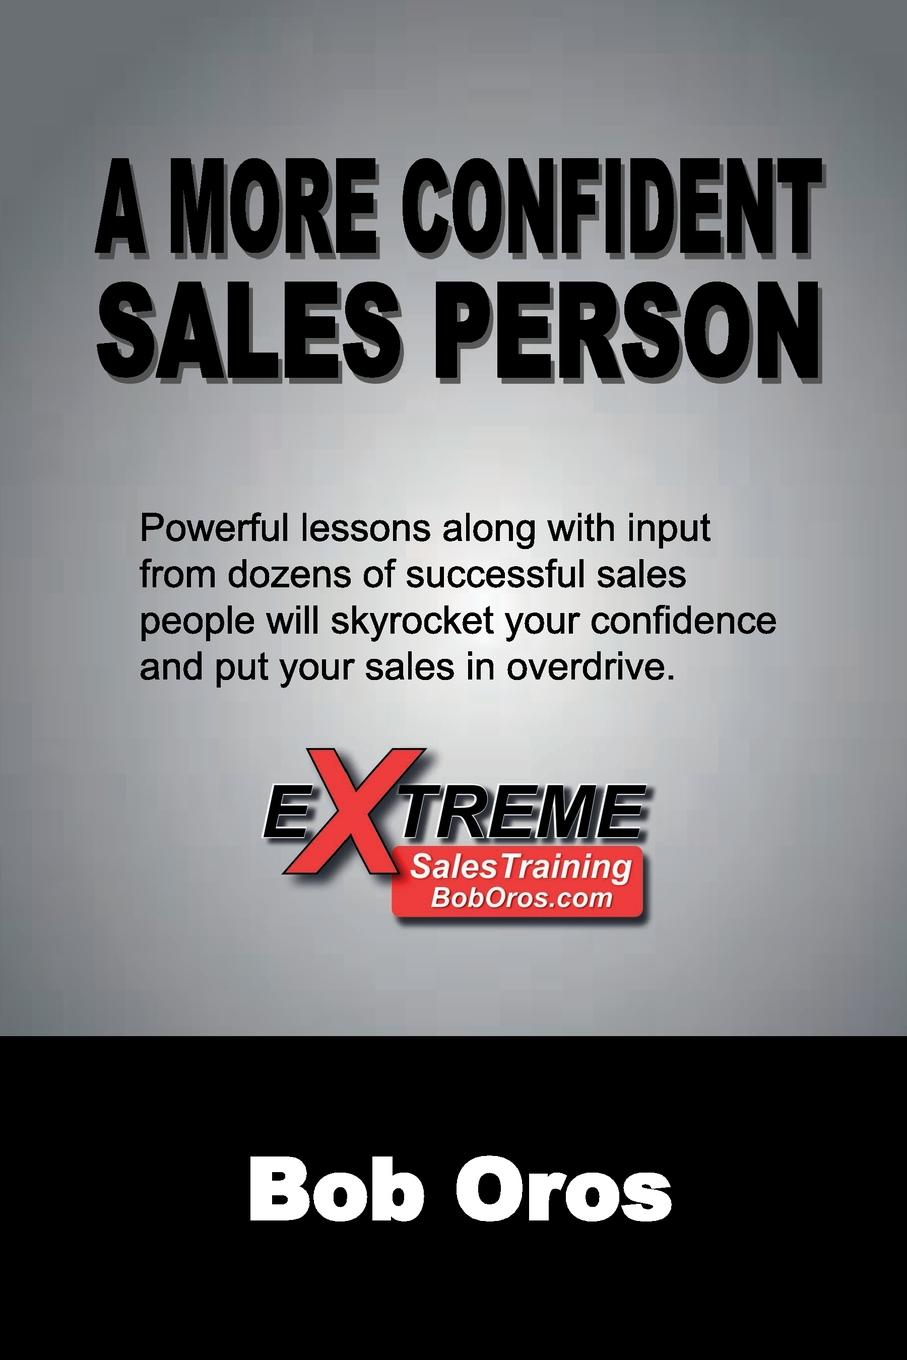 A More Confident Sales Person Powerful lessons with input from dozens of successful sales...